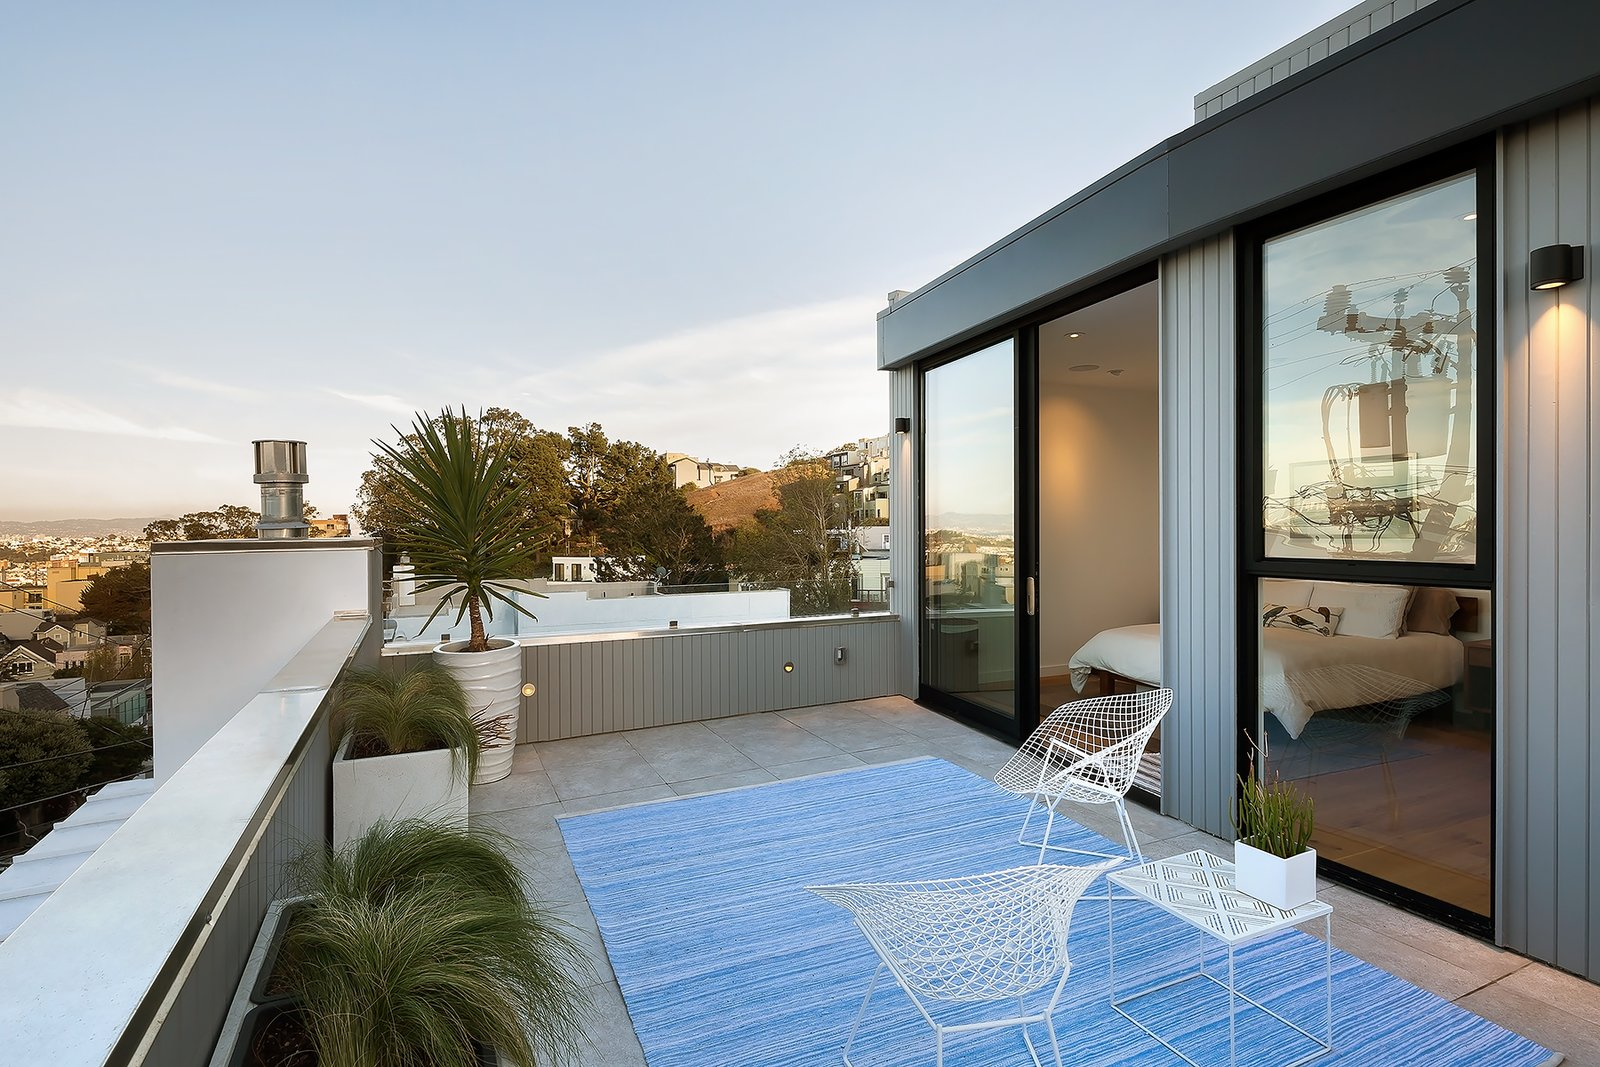 Outdoor and Small Patio, Porch, Deck Roof deck  27th Street - Noe Valley by patrick perez/designpad architecture